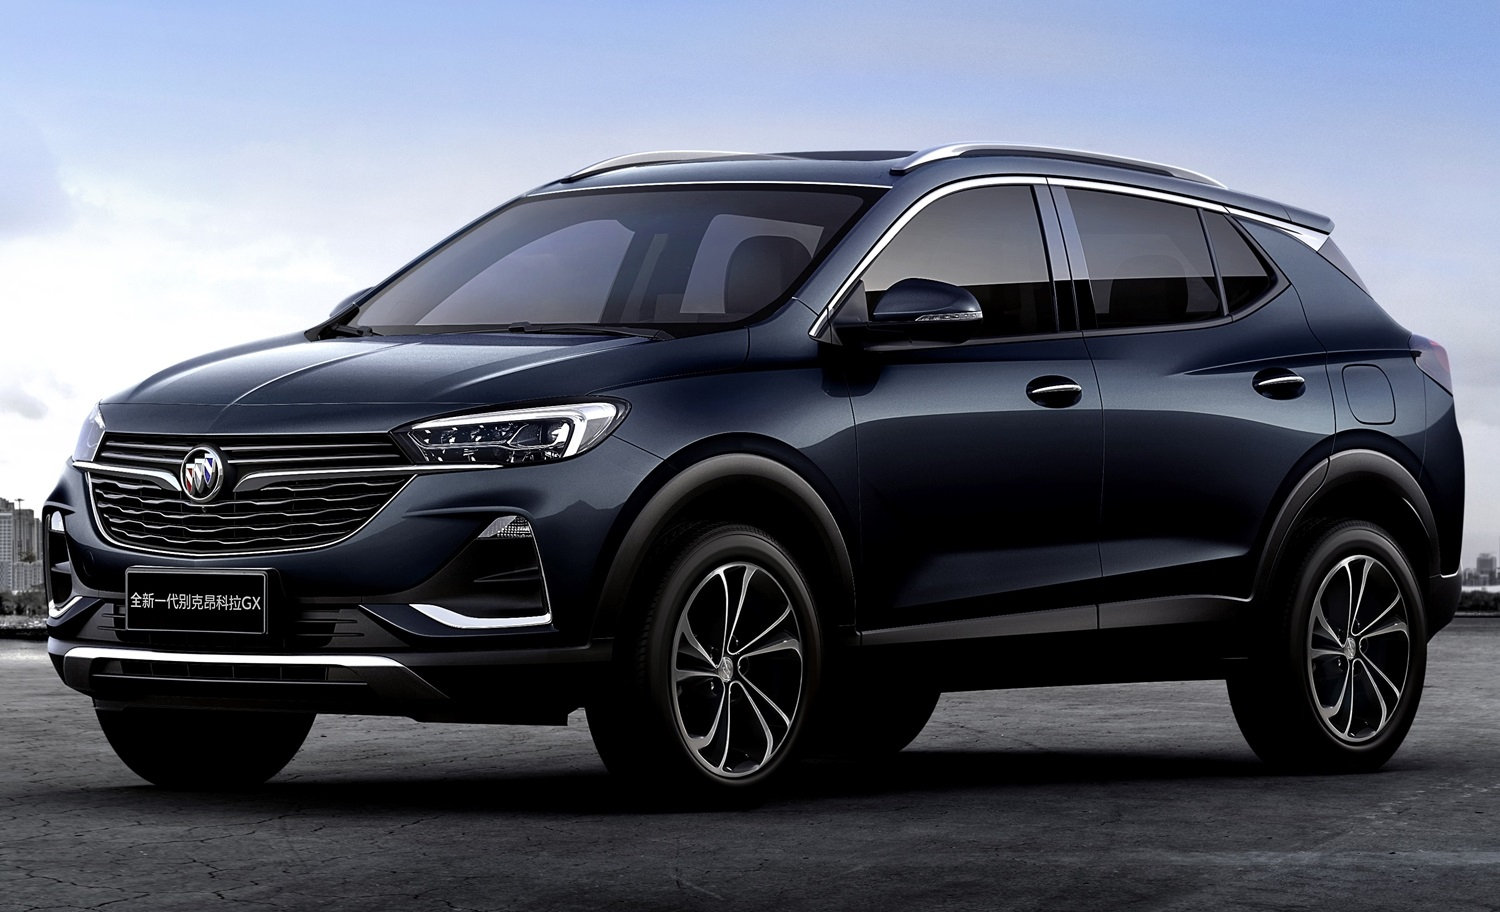 New Buick Encore Gx Images Released: Photo Gallery | Gm New 2022 Buick Encore Gx Length, Price, Gas Mileage